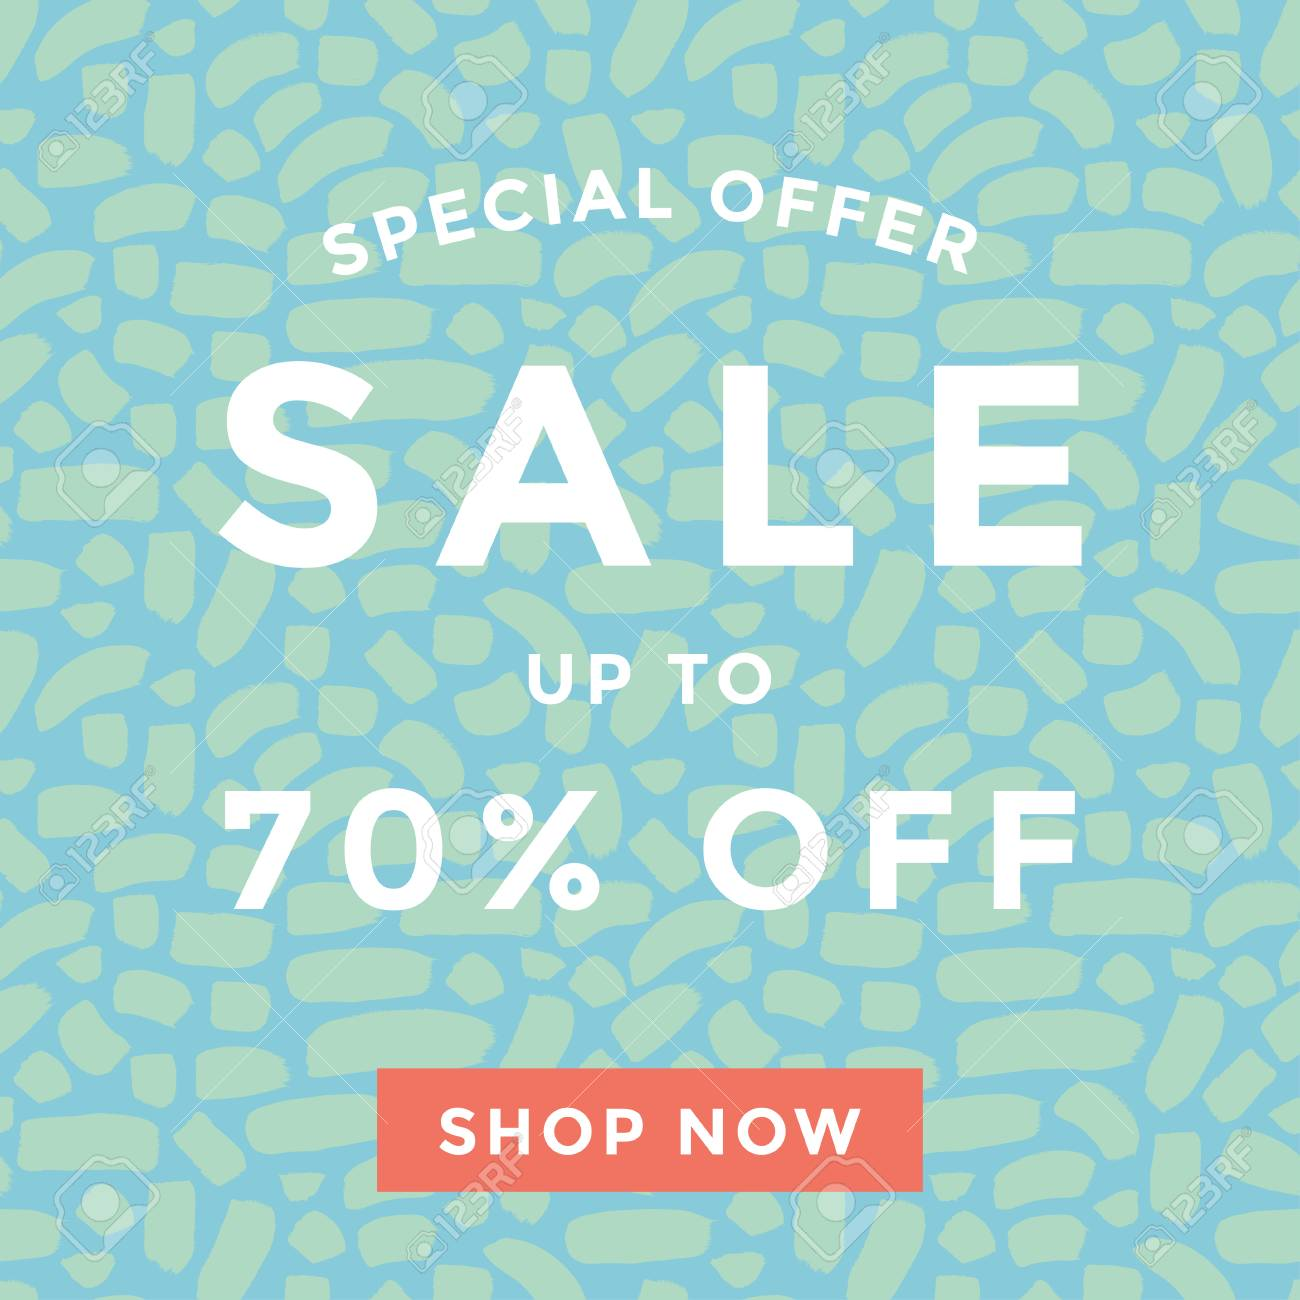 Sale Banner Design Or Ads Web Template With Seamless Pattern Royalty Free Cliparts Vectors And Stock Illustration Image 110244627